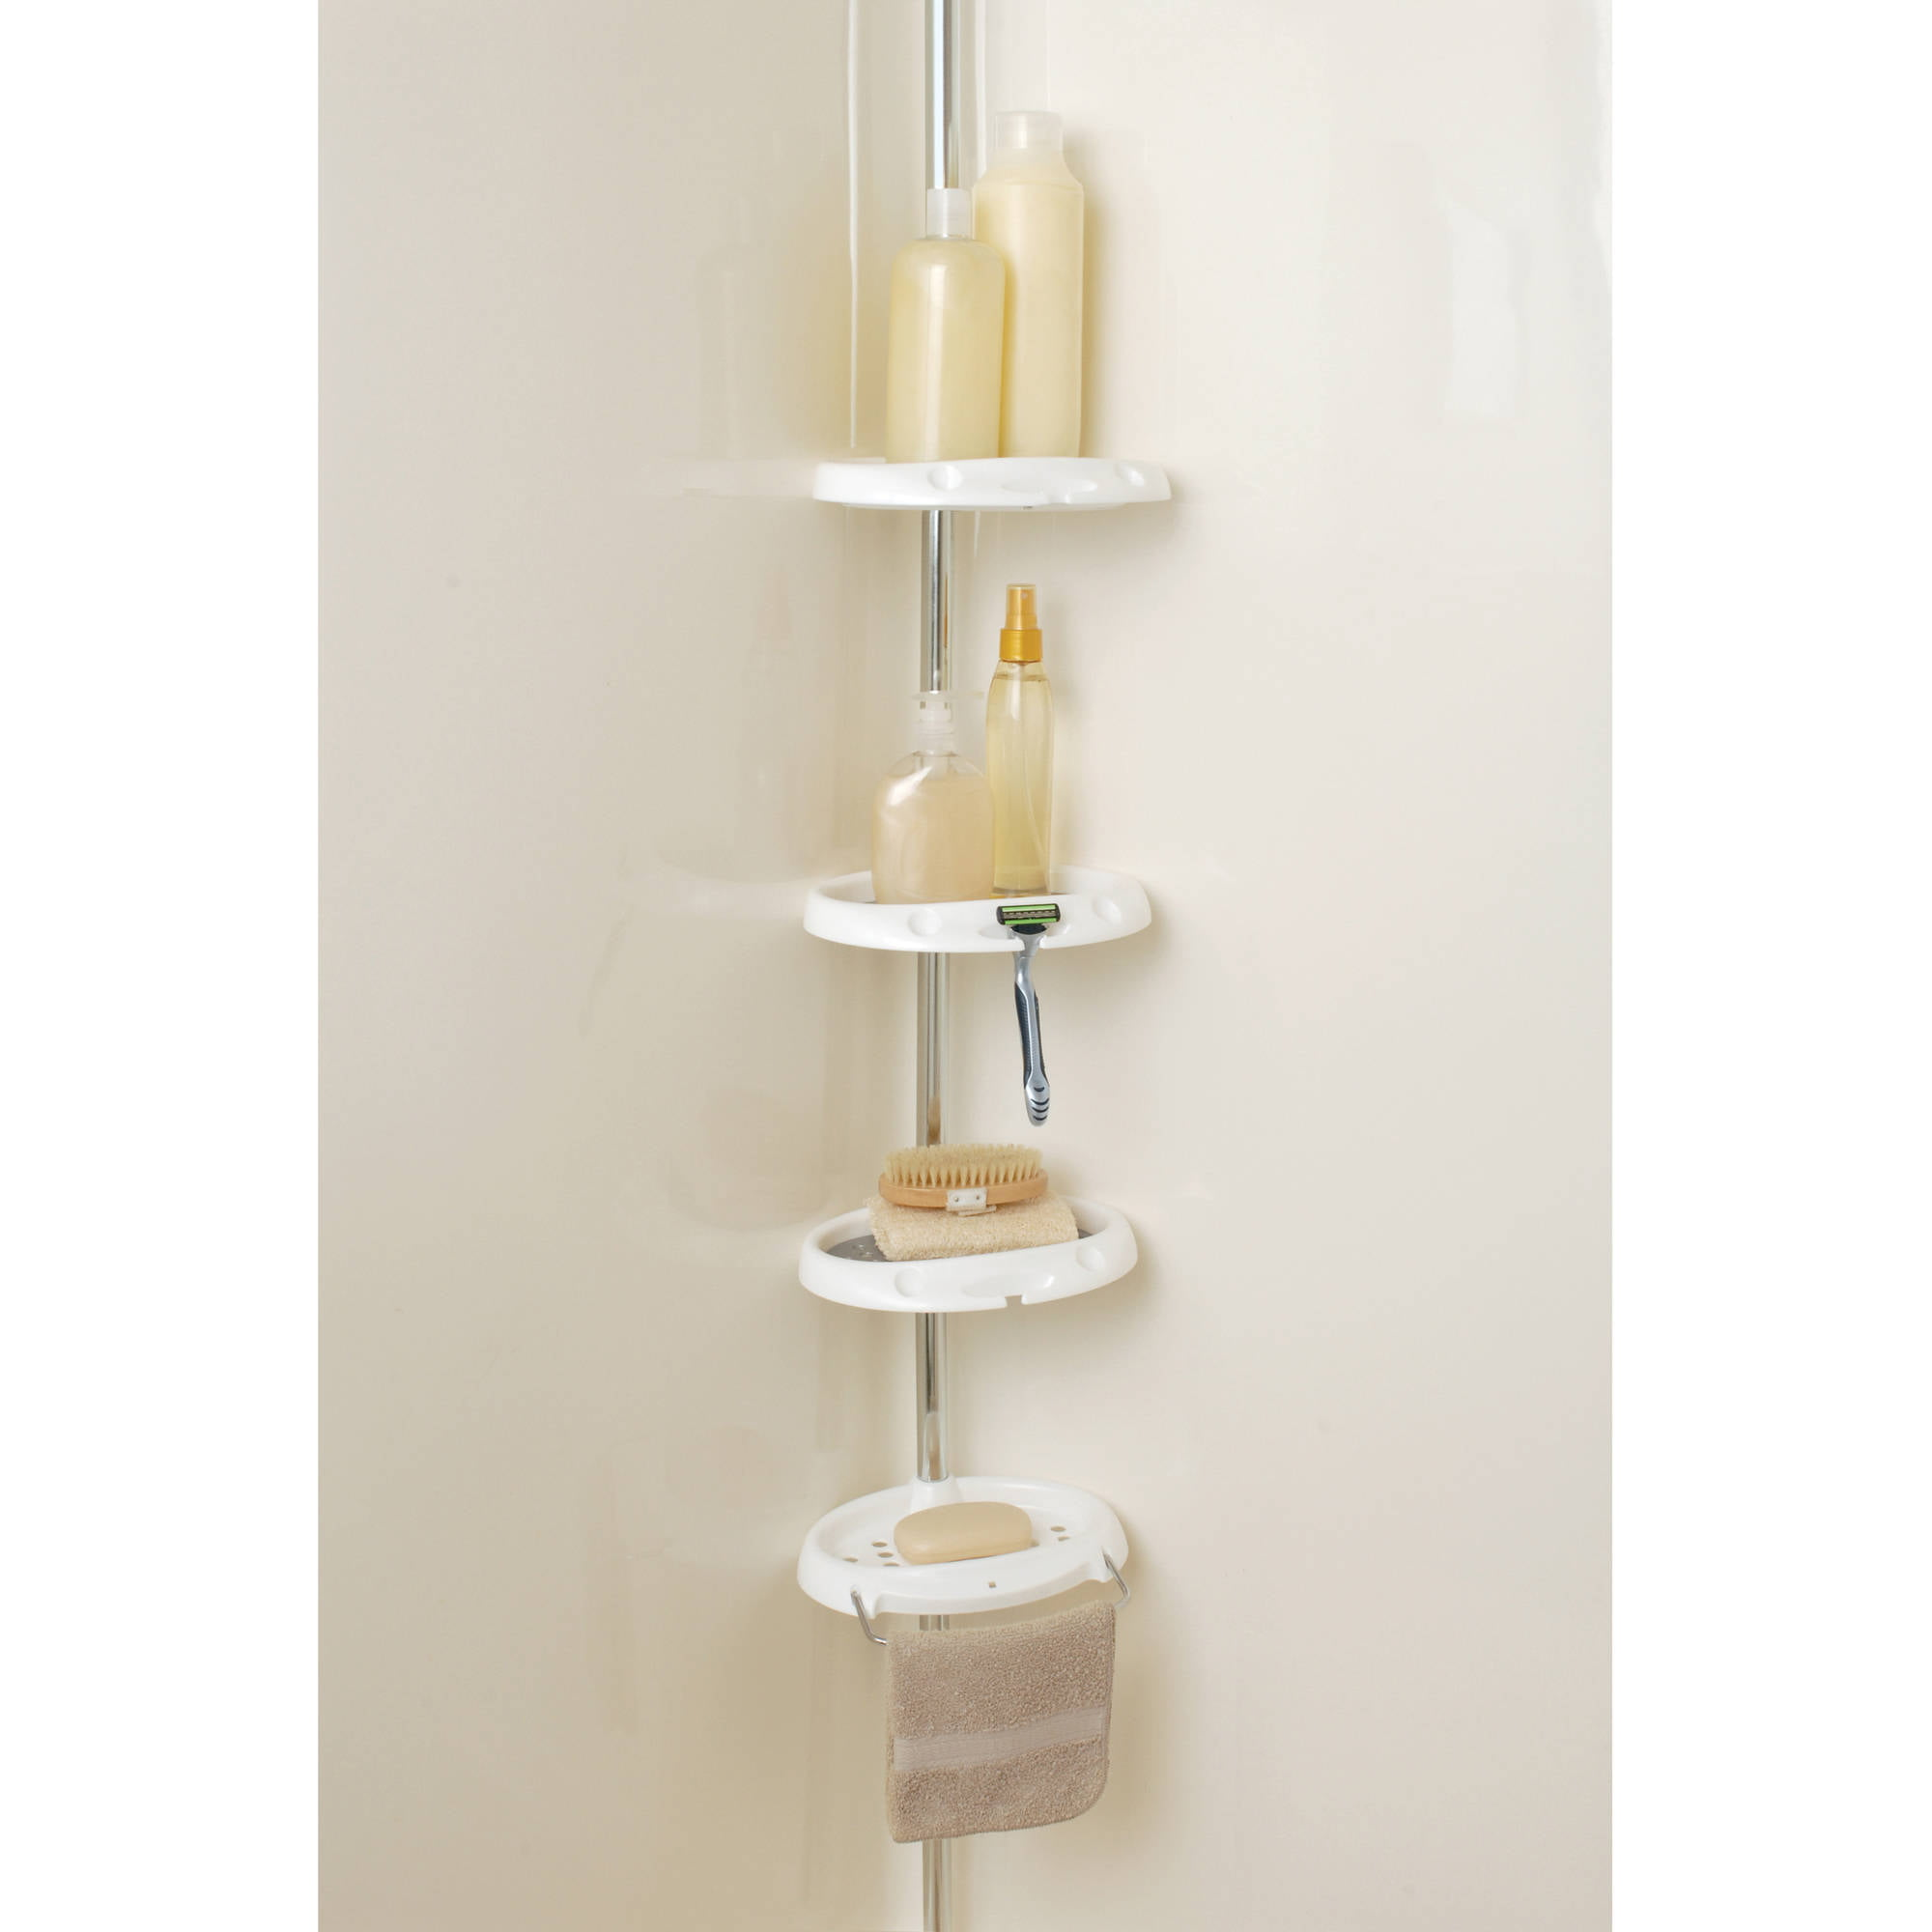 . Tension Shower Caddy   White   Walmart com